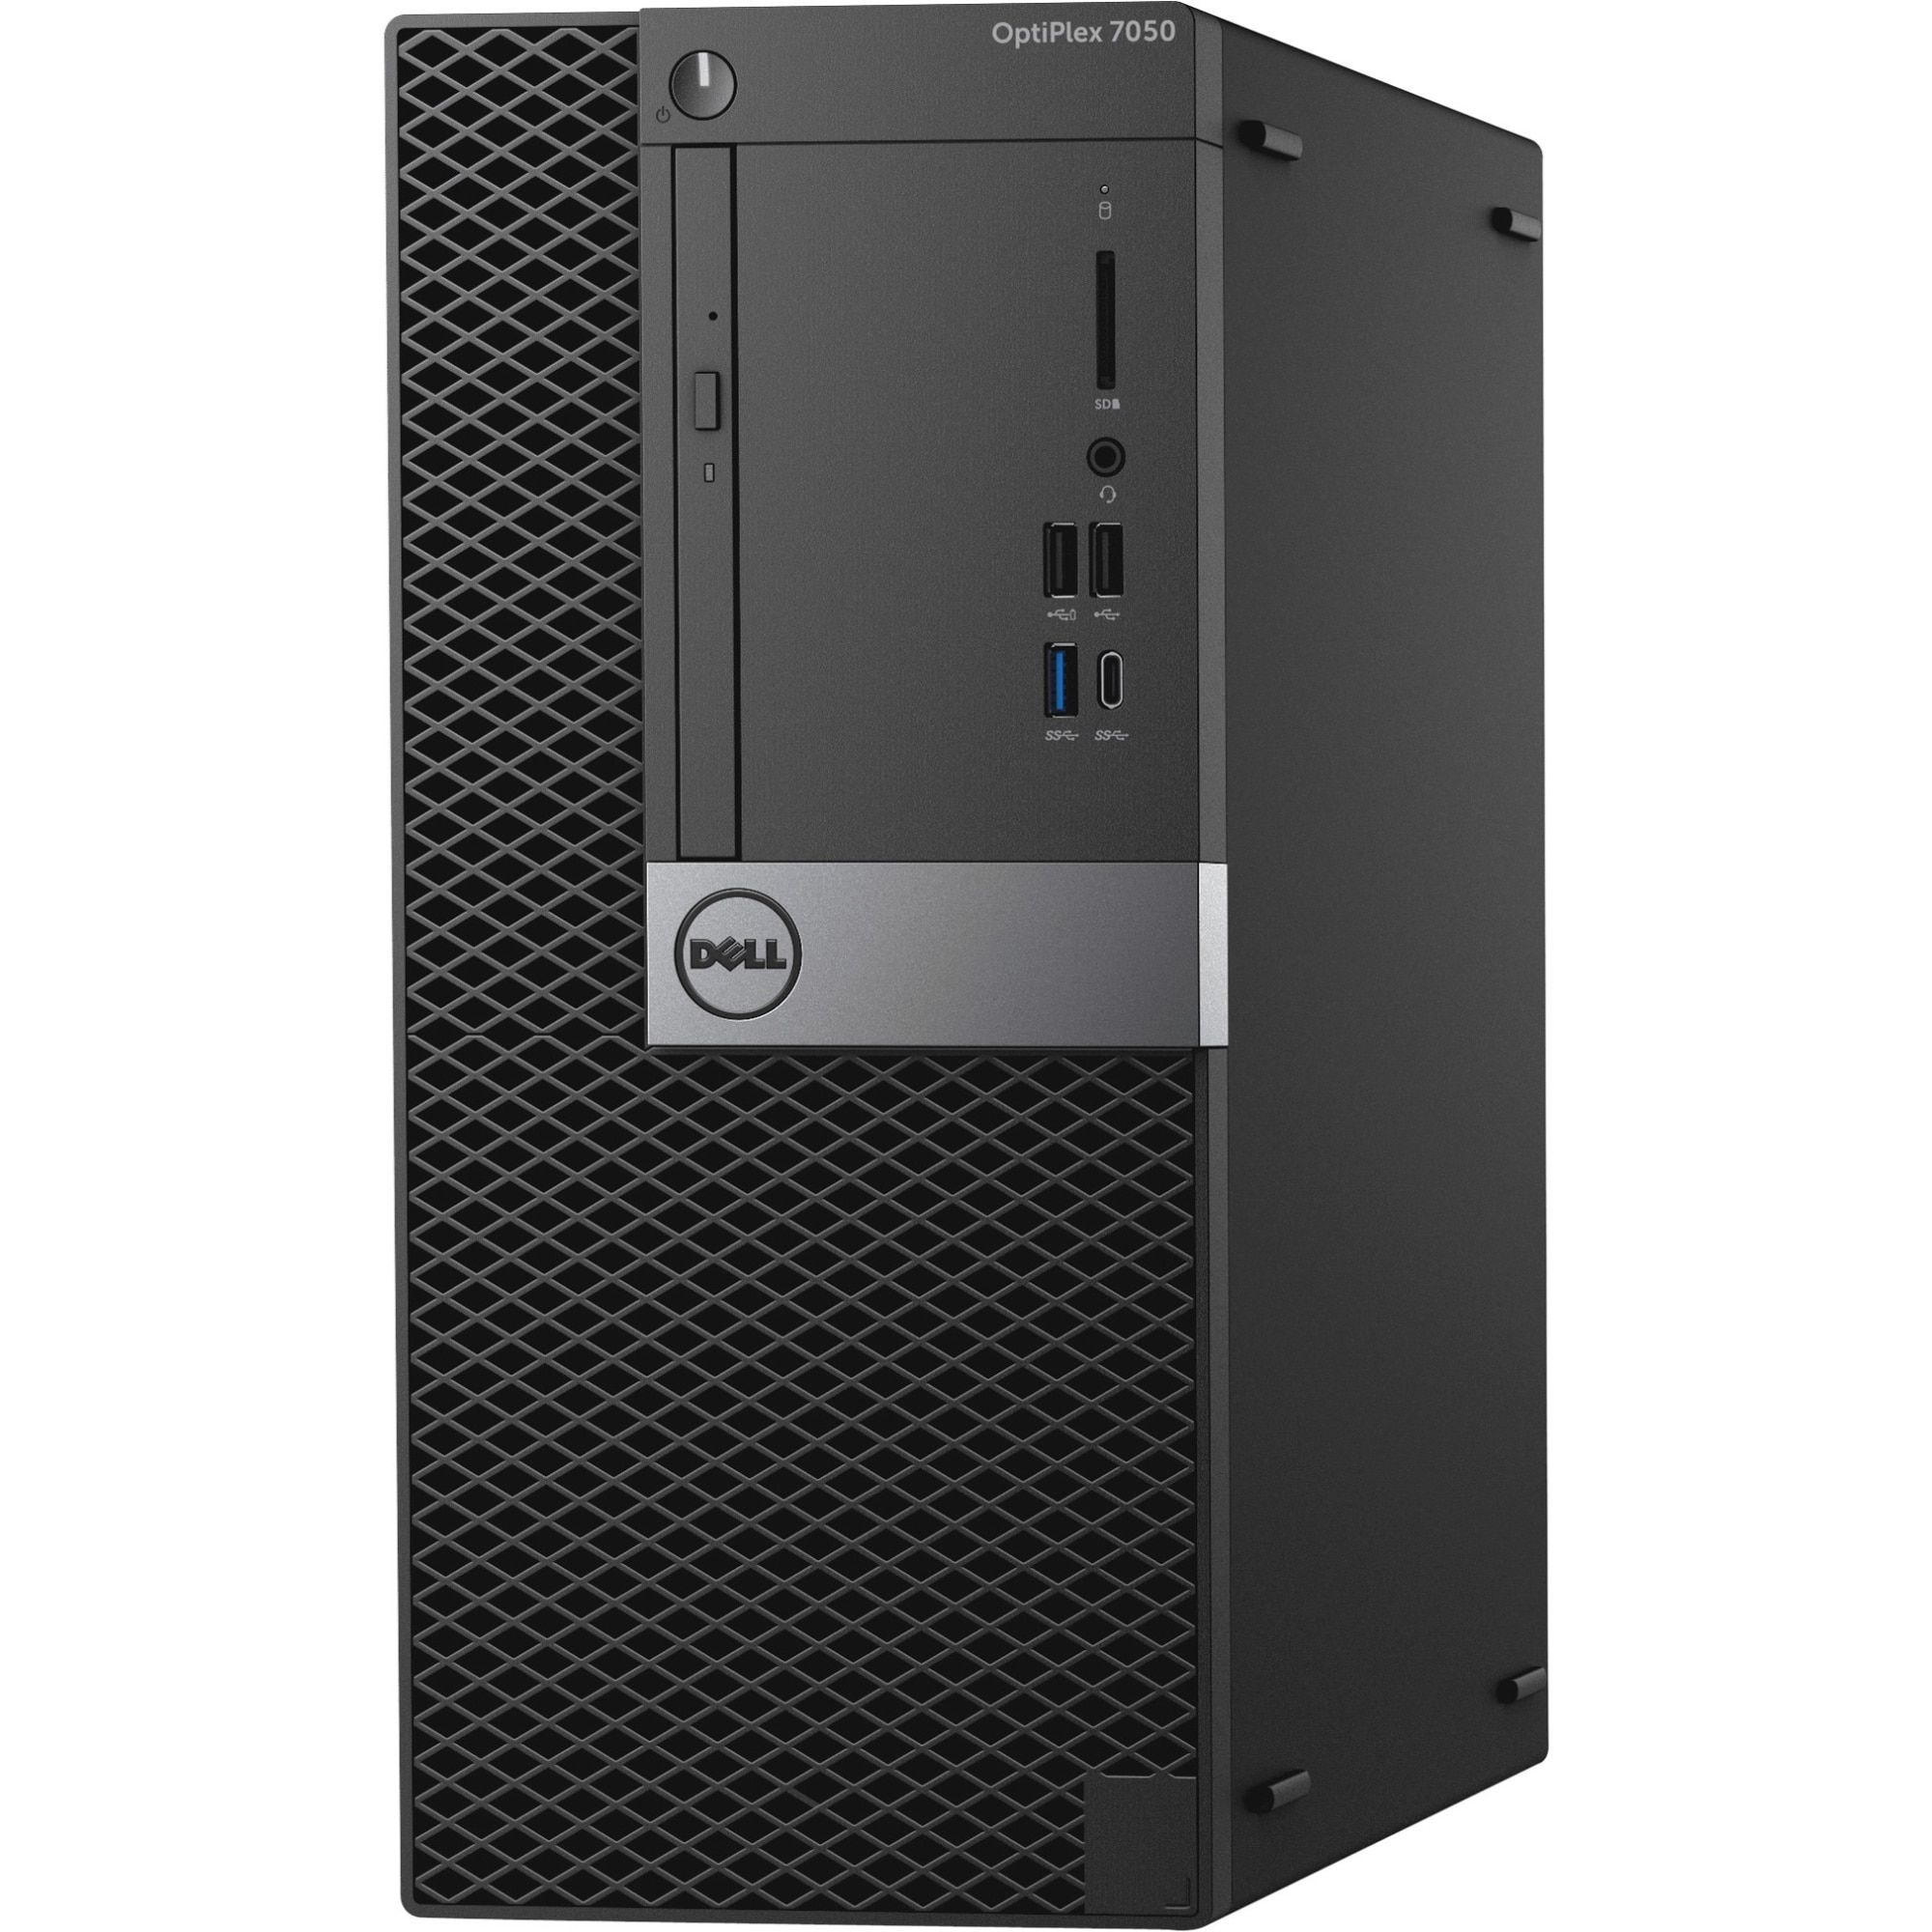 Miraculous Dell Optiplex 7000 7050 Desktop Computer Intel Core I5 Download Free Architecture Designs Terchretrmadebymaigaardcom